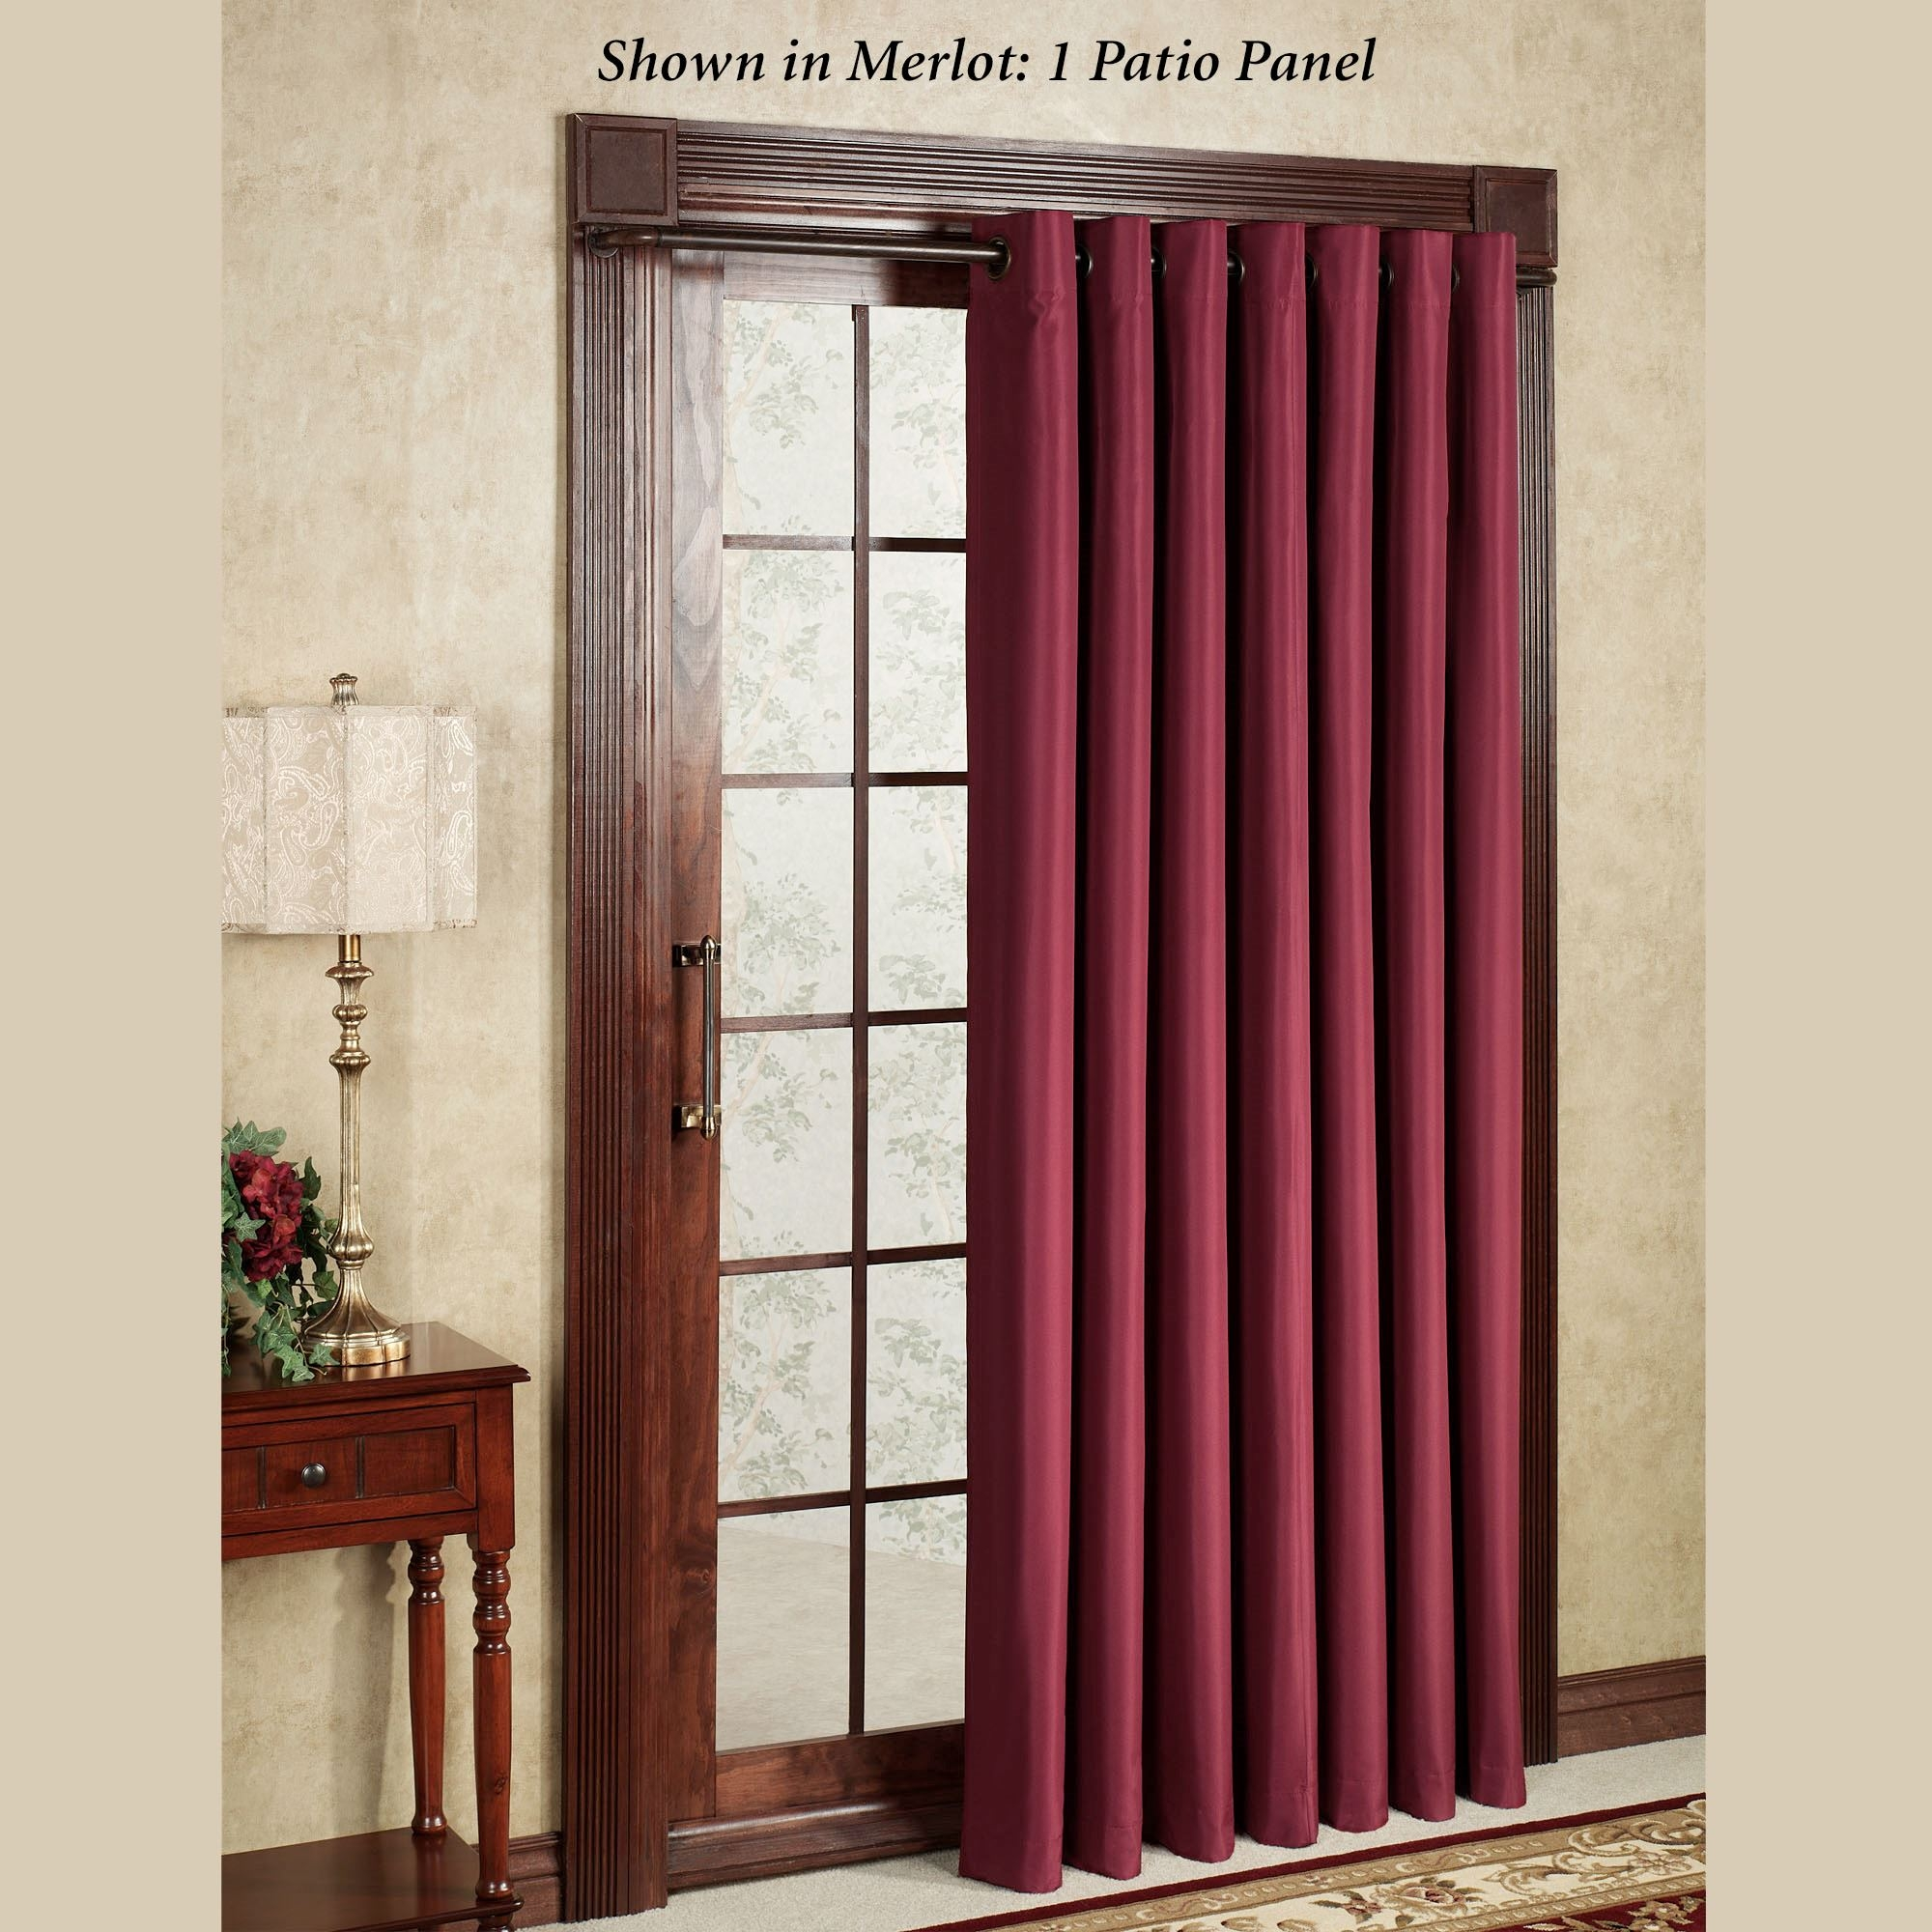 Thermal Lined Drapes For Sliding Glass DoorsThermal Lined Drapes For Sliding Glass Doors